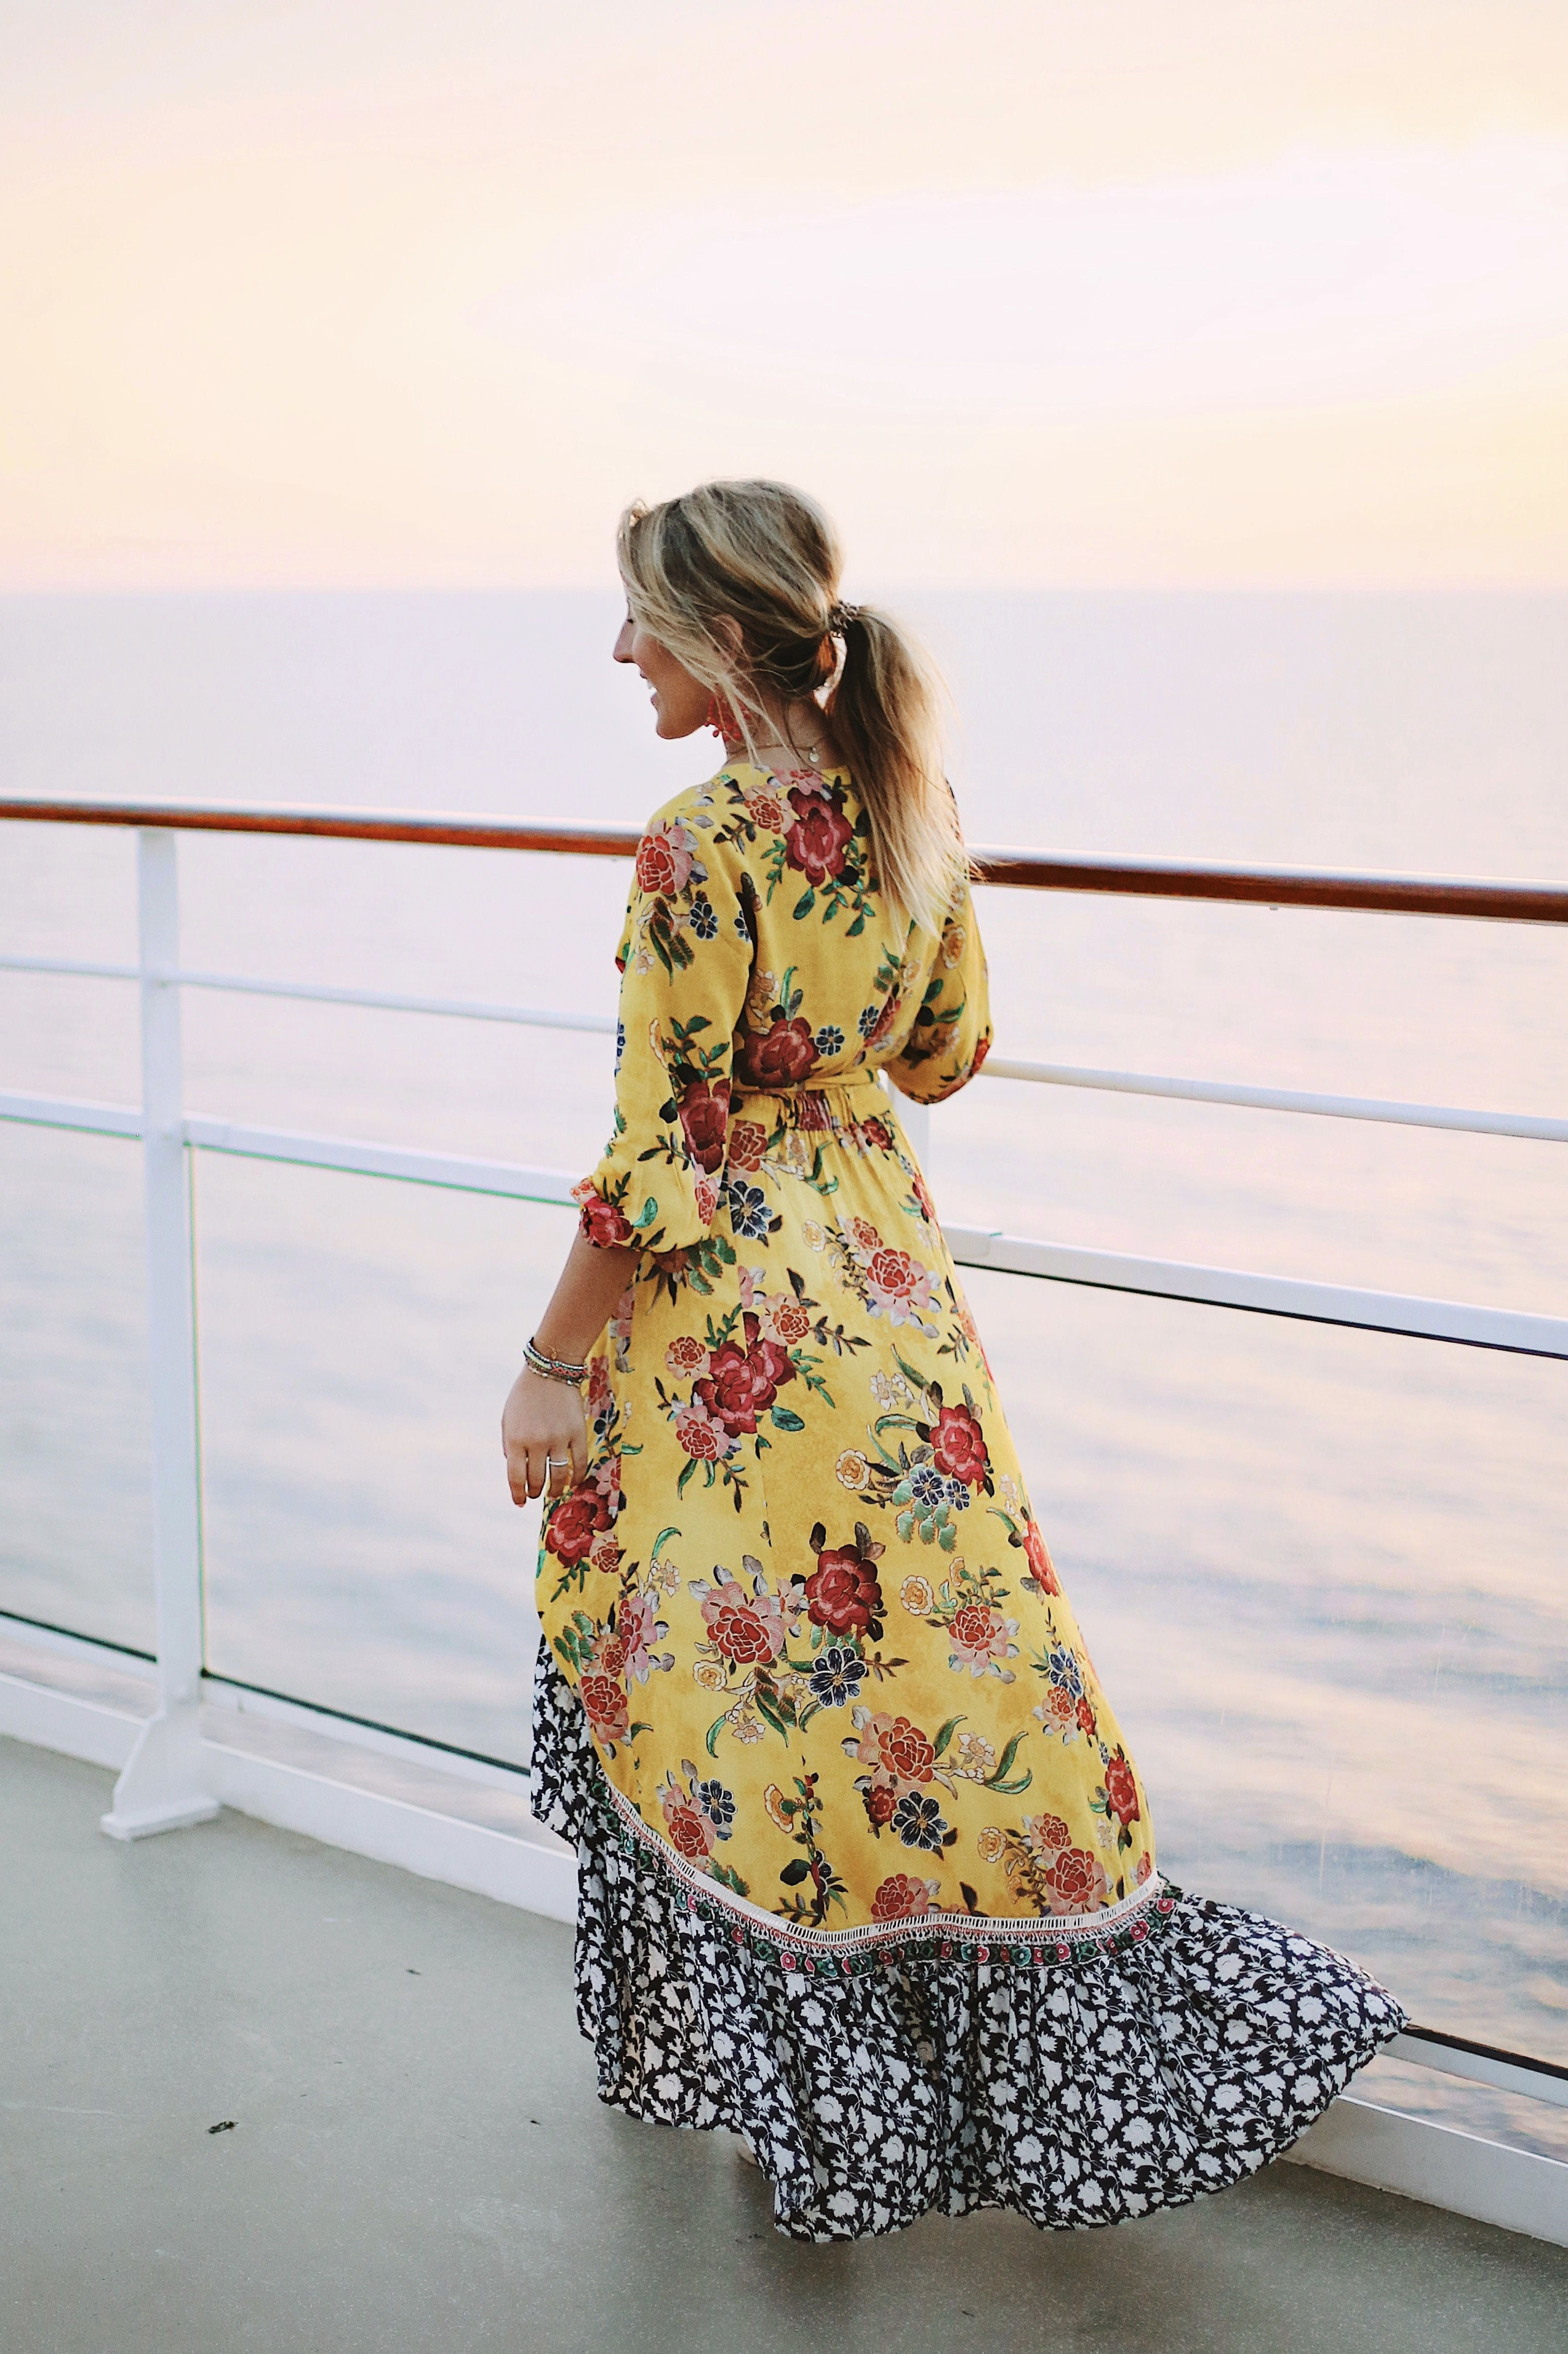 Skirt Maxi outfits tumblr pictures forecast to wear in summer in 2019